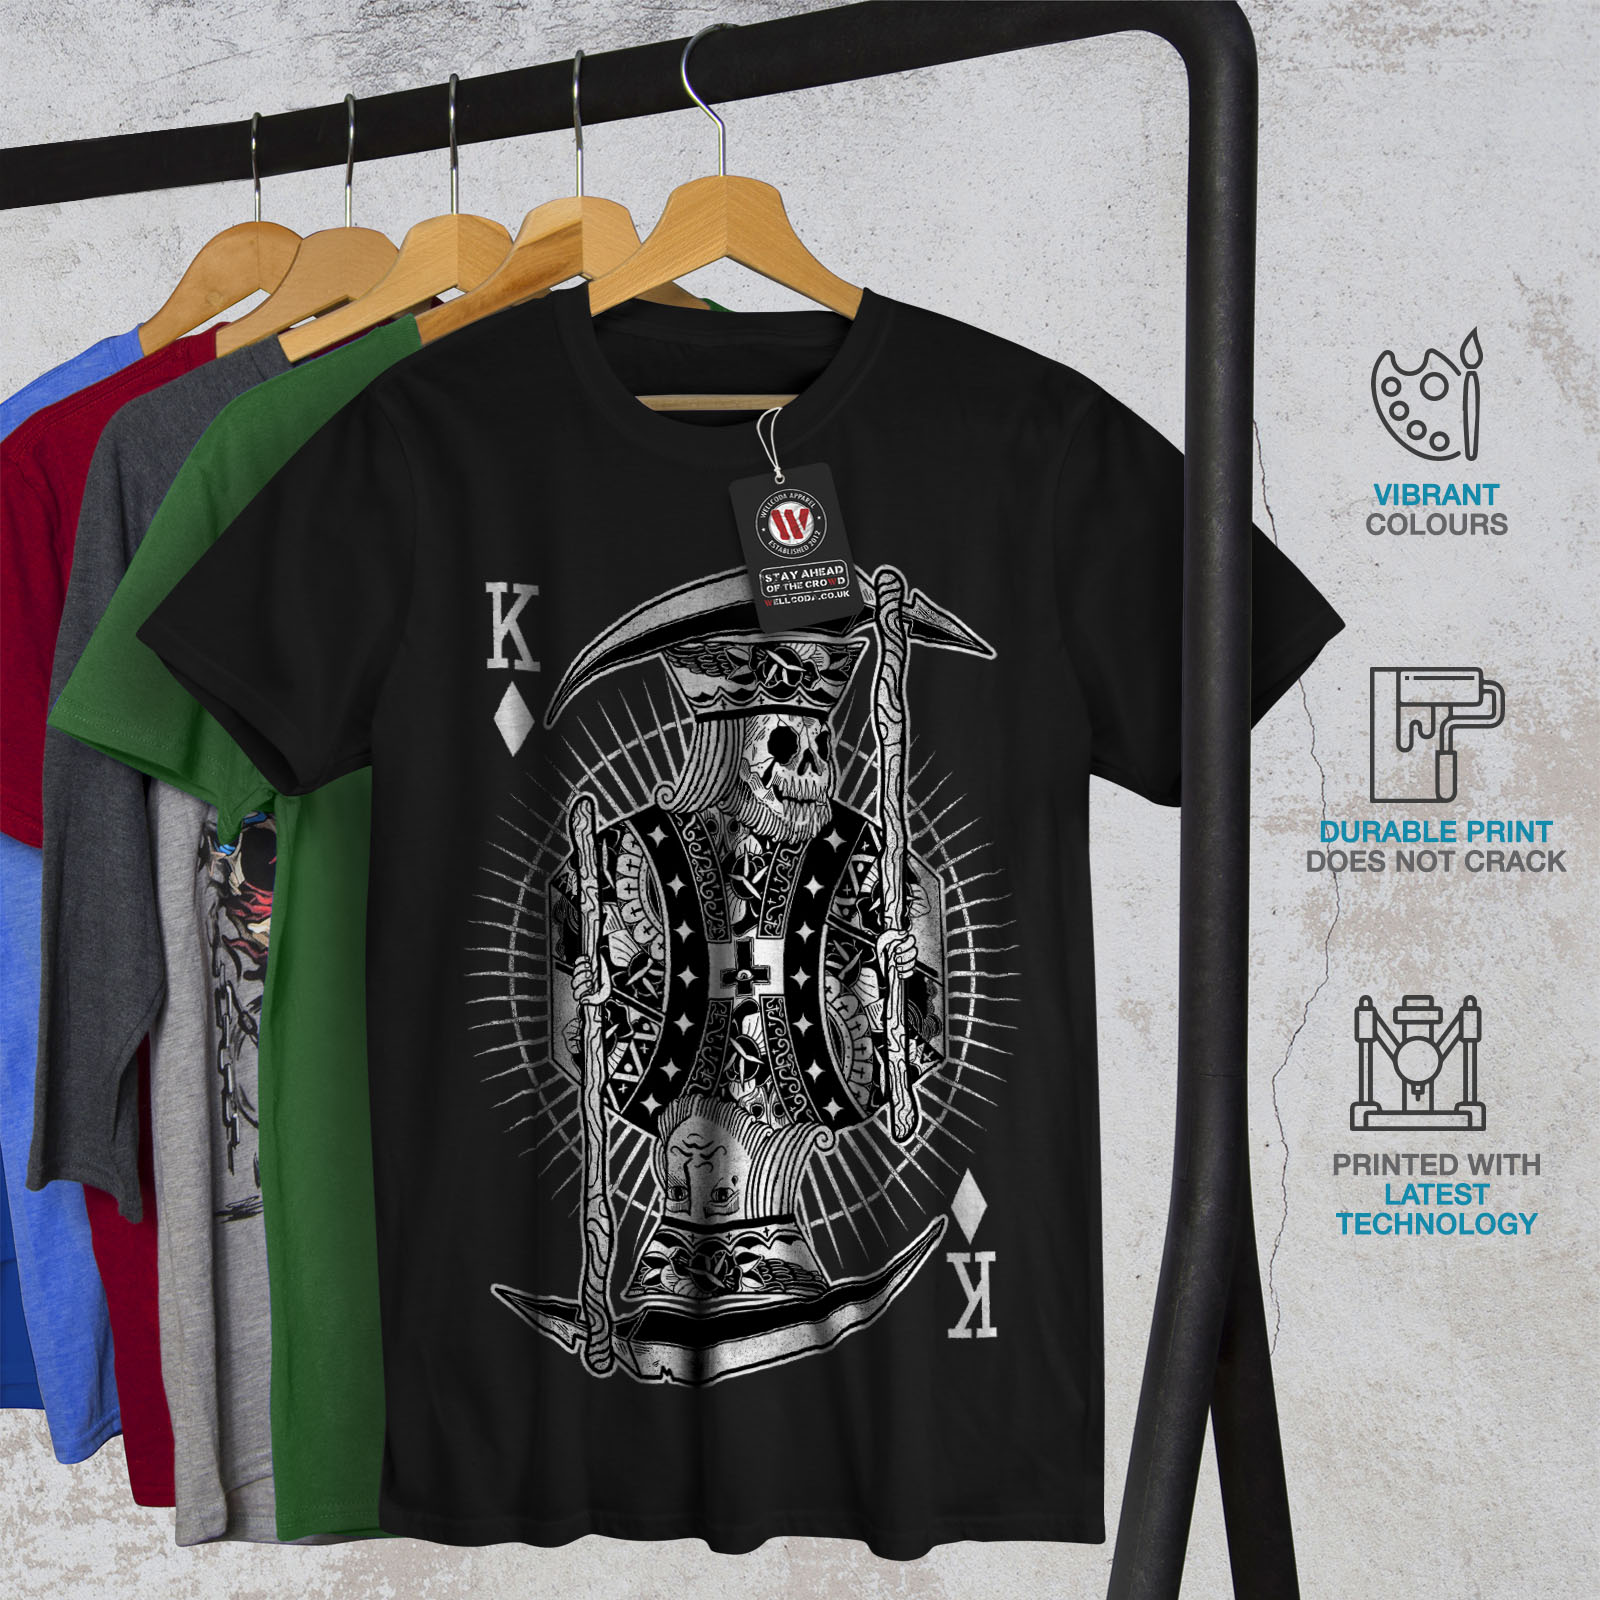 Wellcoda-Poker-Horror-King-Skull-Mens-T-shirt-Graphic-Design-Printed-Tee thumbnail 6